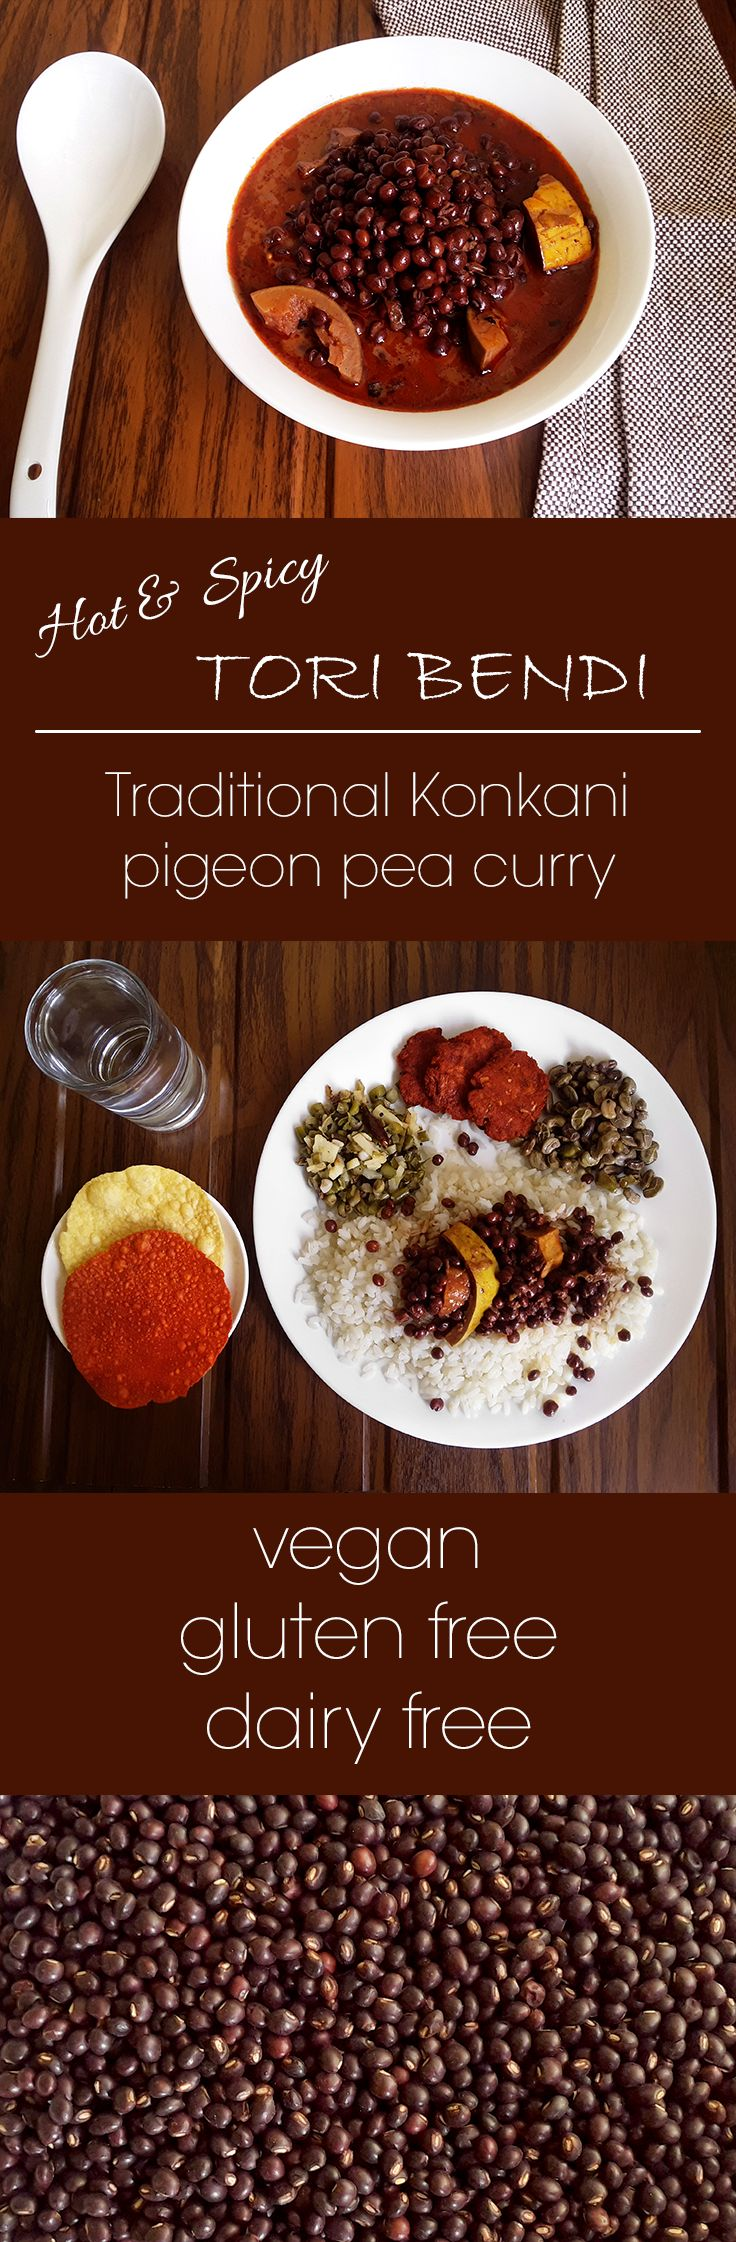 Tori Bendi - Pigeon pea chili curry - Pinterest